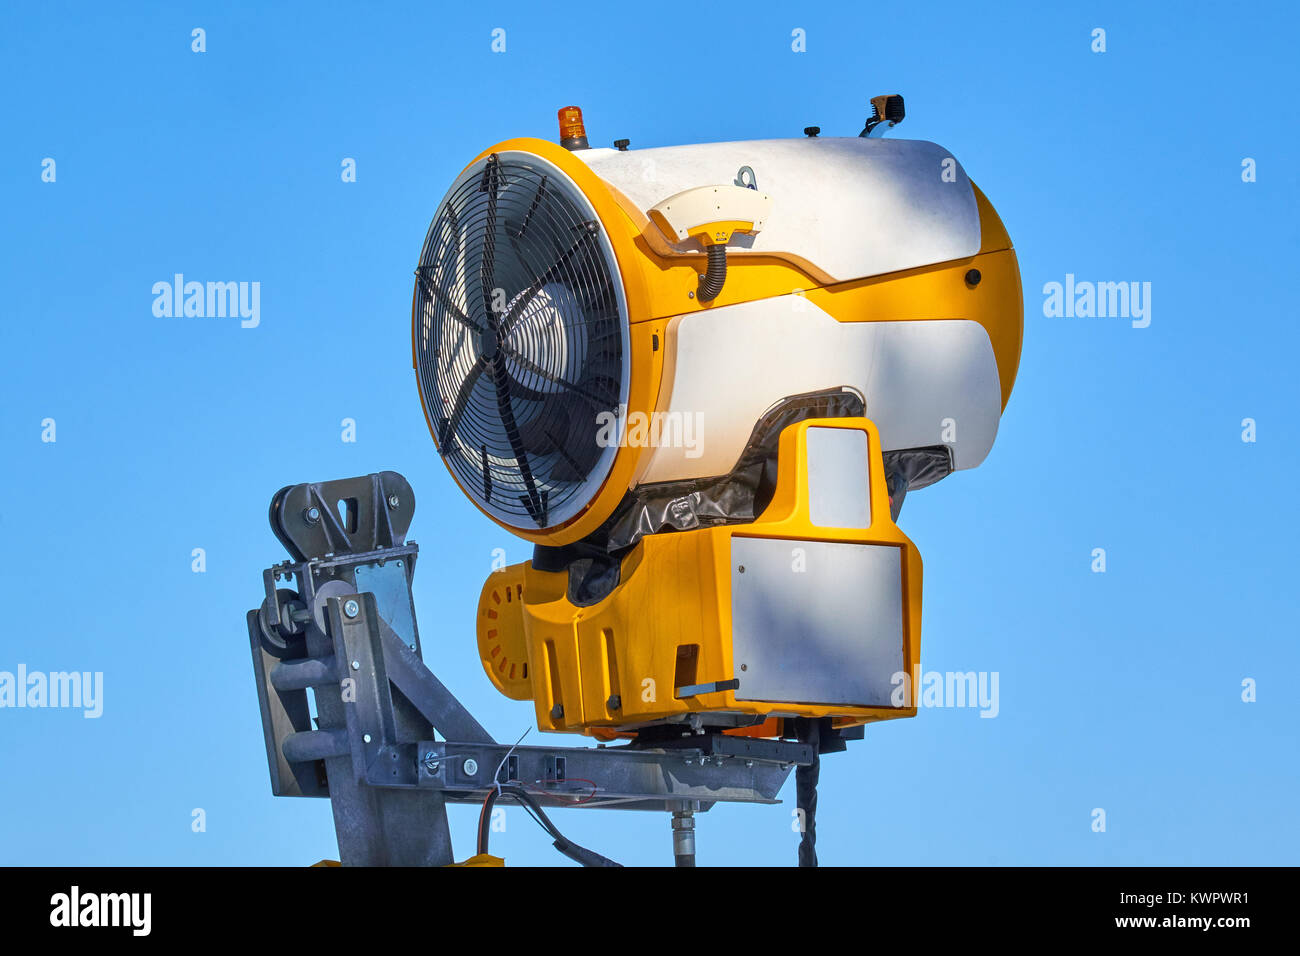 Turned off snow cannon up in the air on a stand at Ski Carousel Winterberg in bright sun - Stock Image